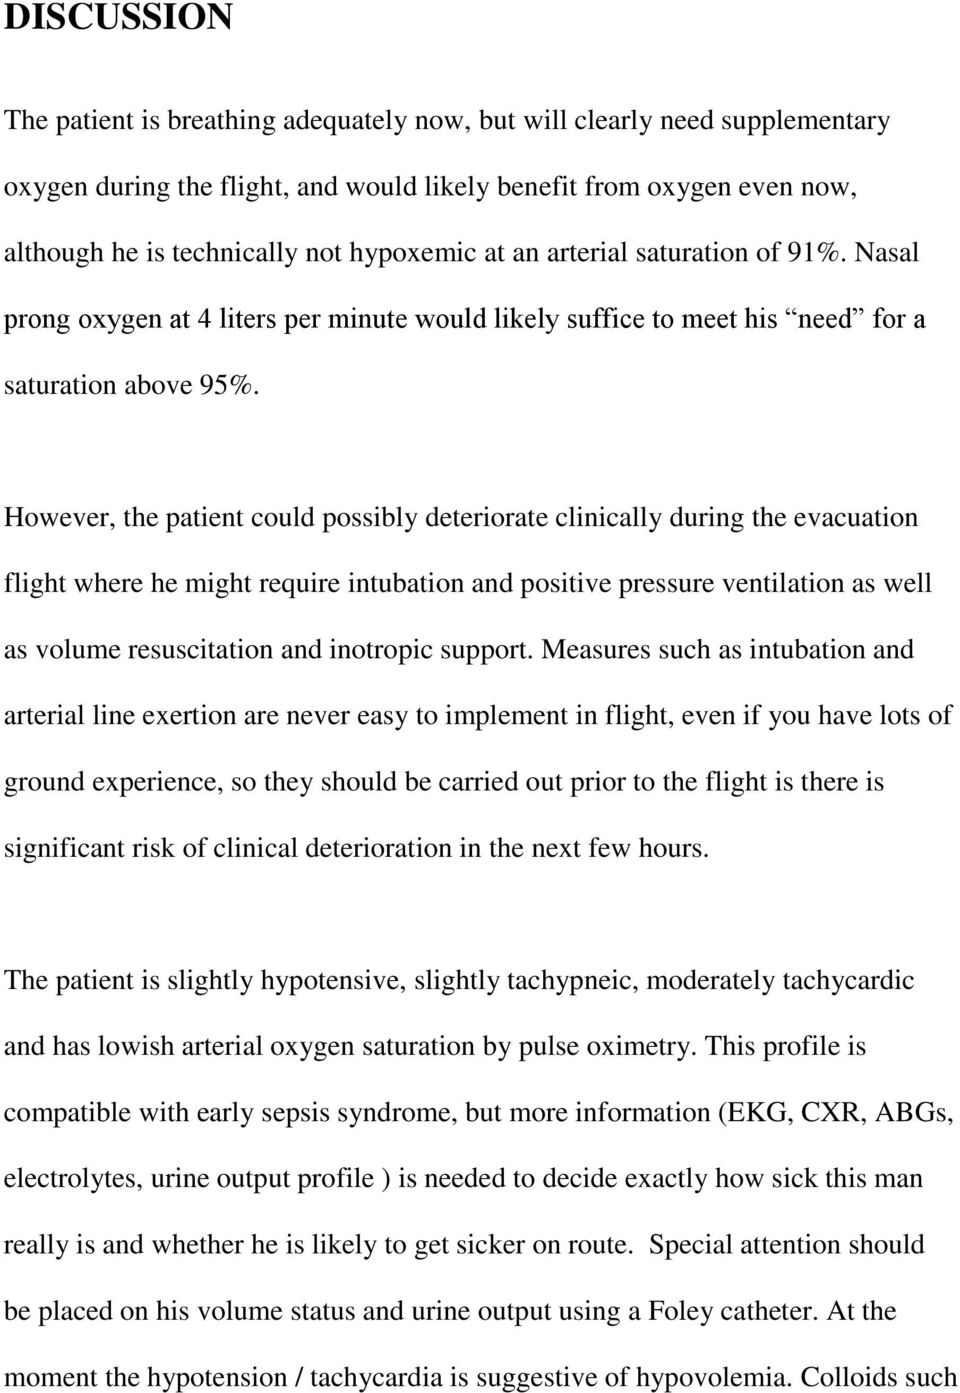 However, the patient could possibly deteriorate clinically during the evacuation flight where he might require intubation and positive pressure ventilation as well as volume resuscitation and